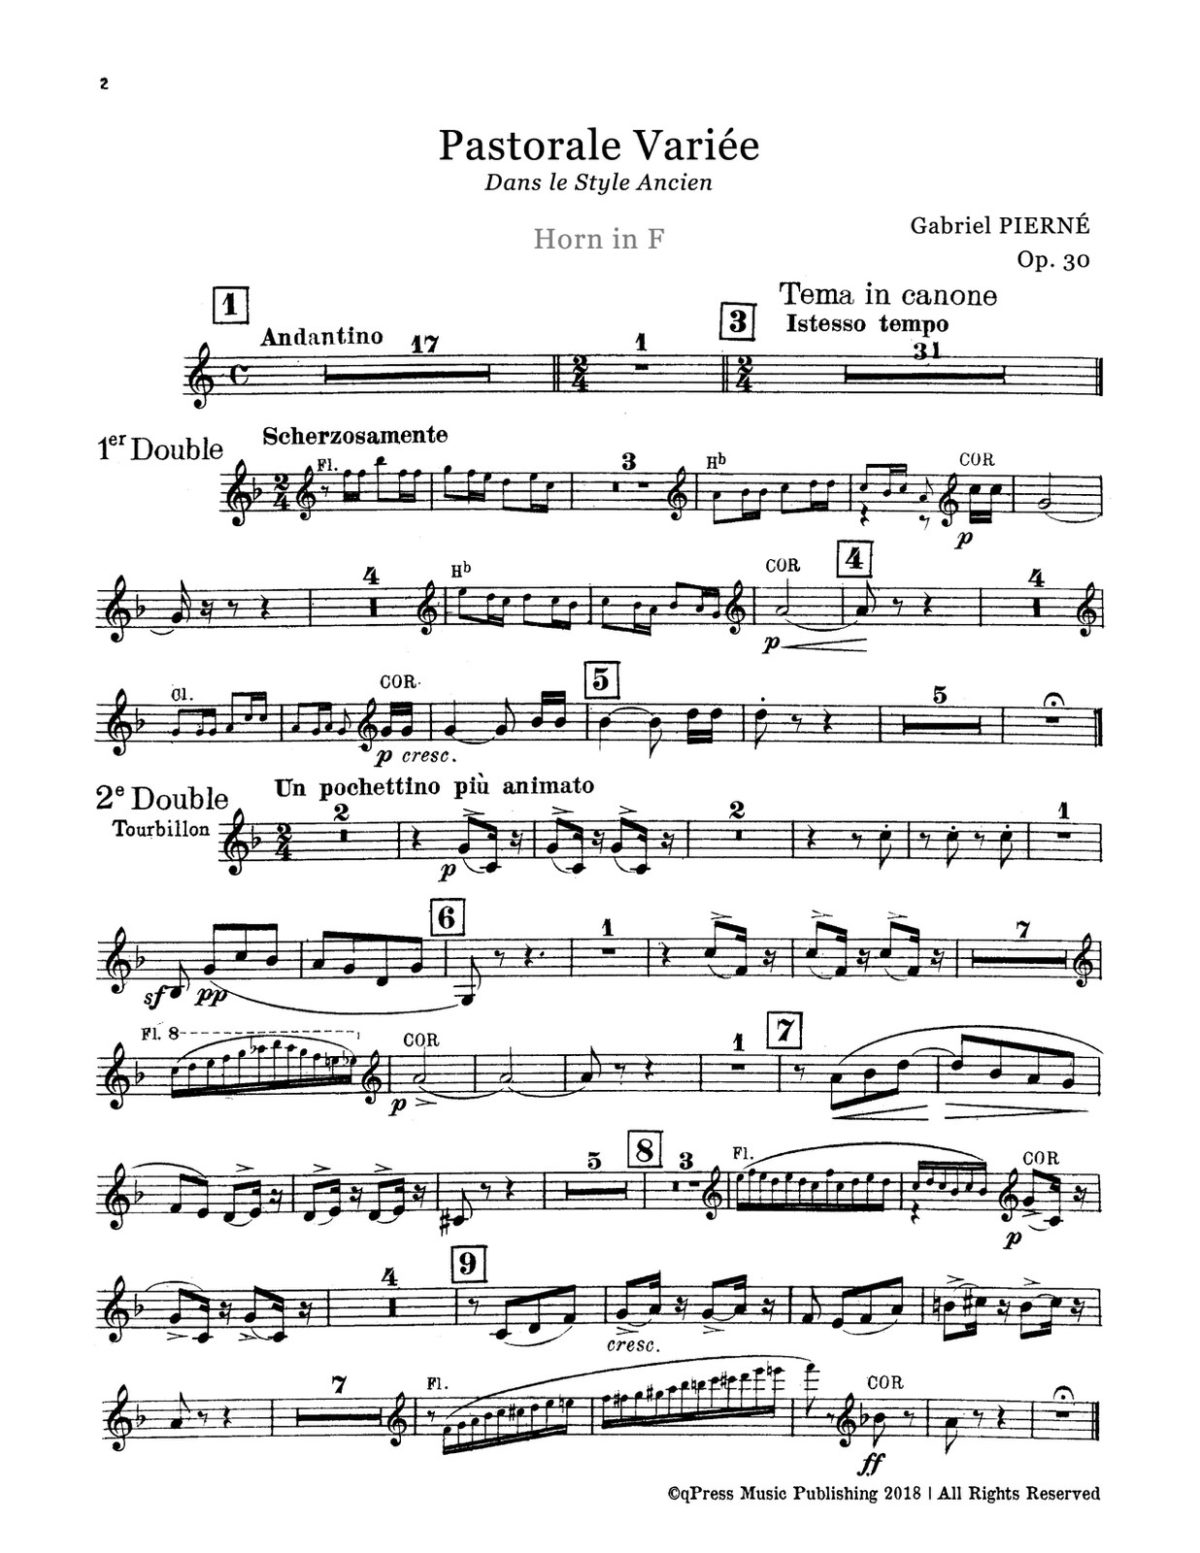 Pierné, Pastorale Variée Parts and Score-p23